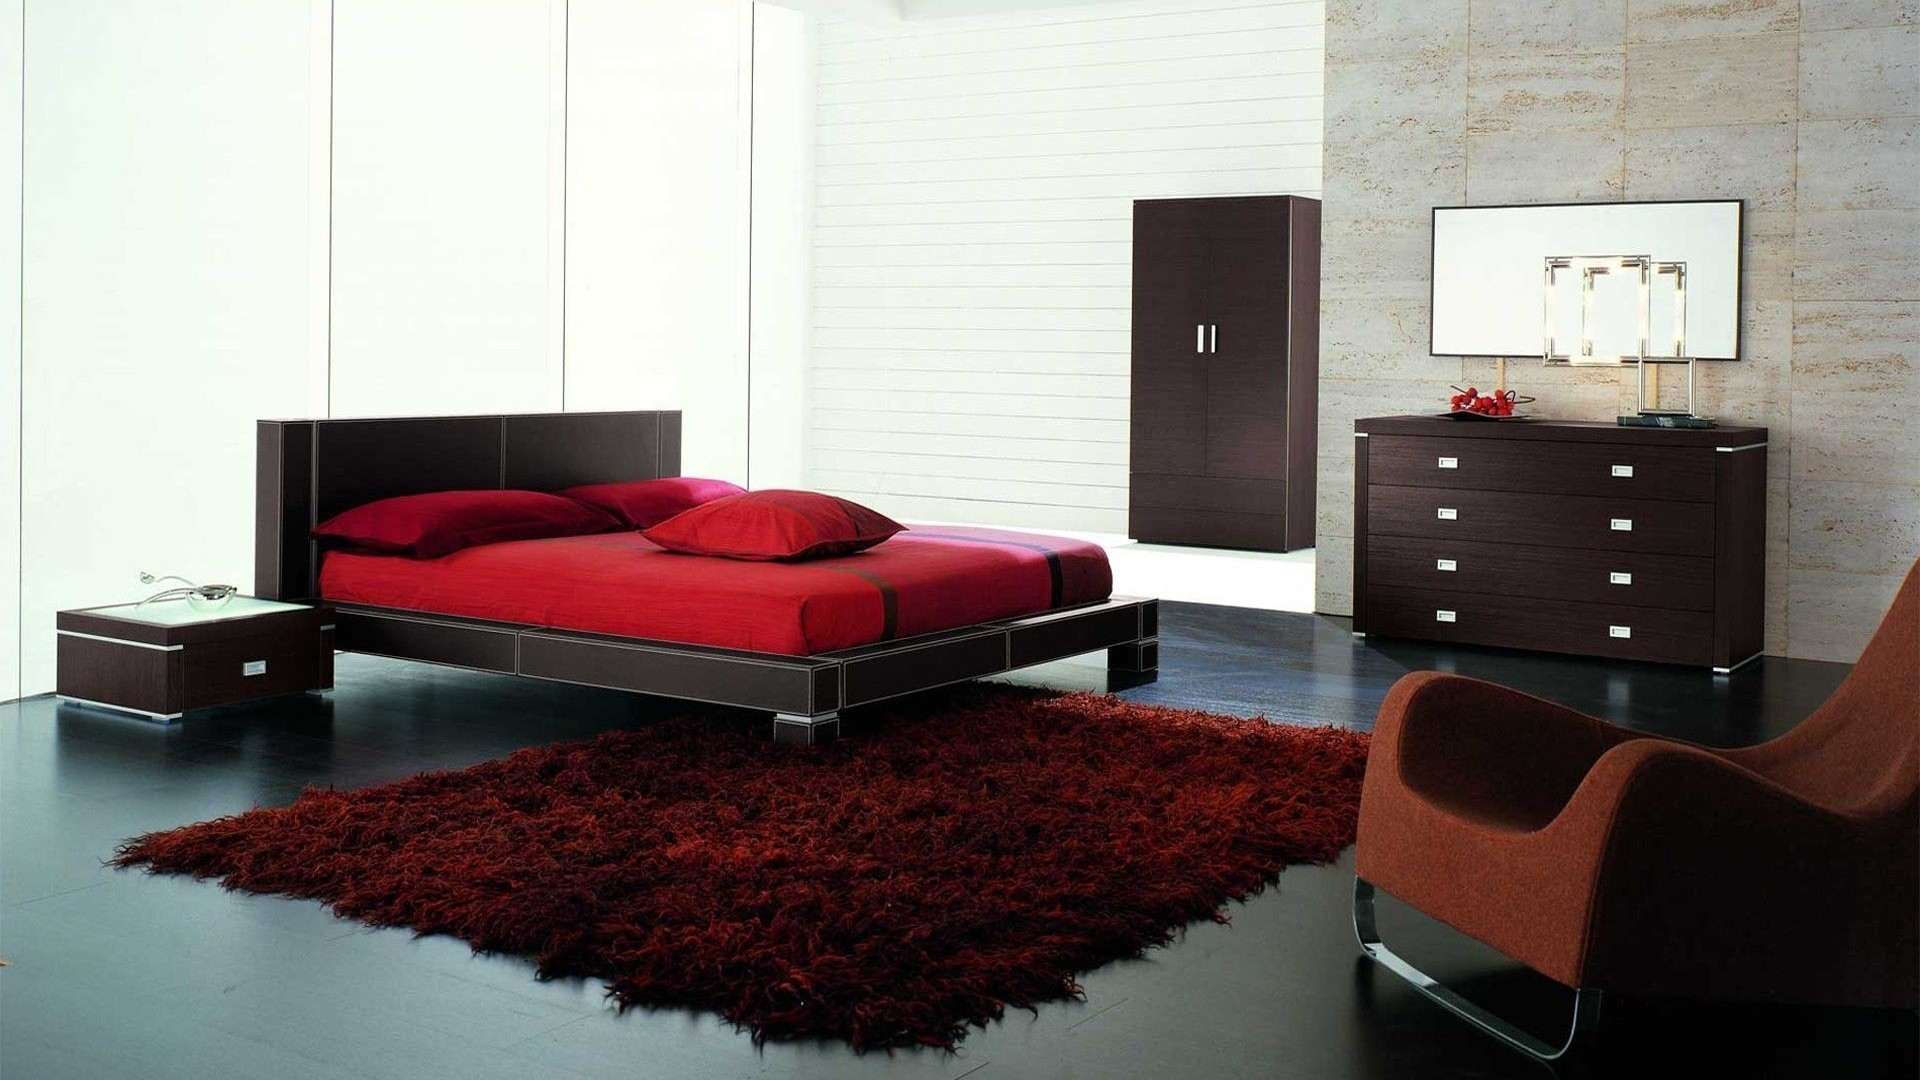 1920x1080 Free Bedroom Design Wallpapers Hd Pop. dining room modern. ideas for  decorating dining room ...